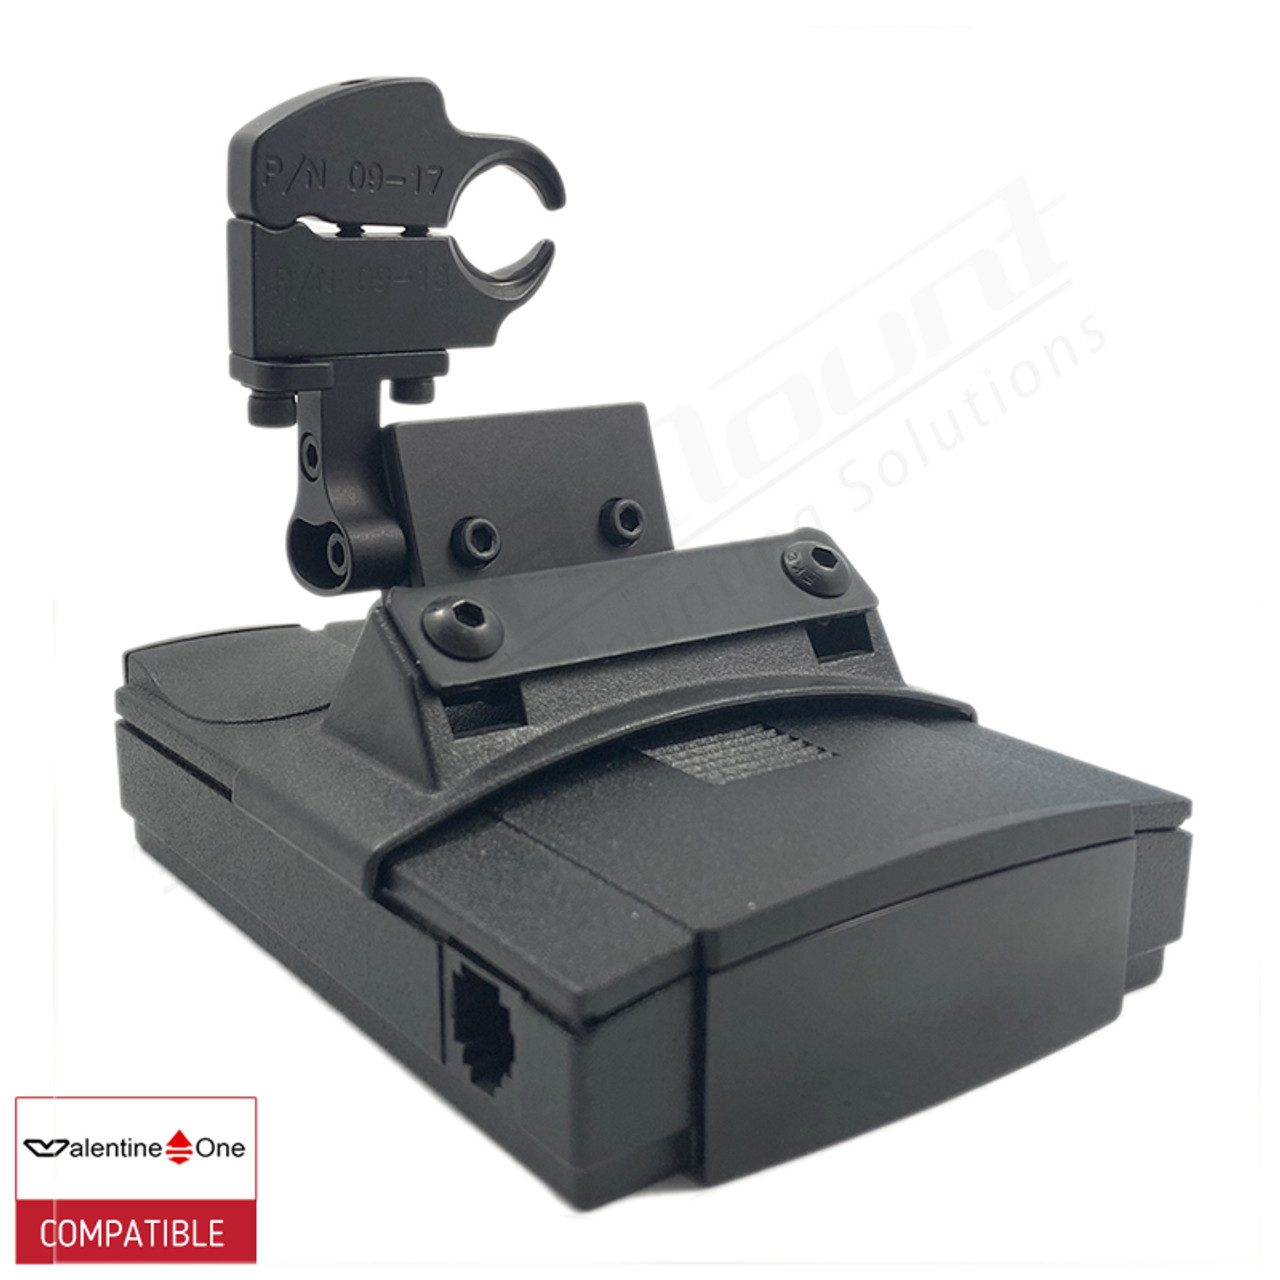 Aluminum Radar Detector Mount for Valentine One, Specialty 2125 Series